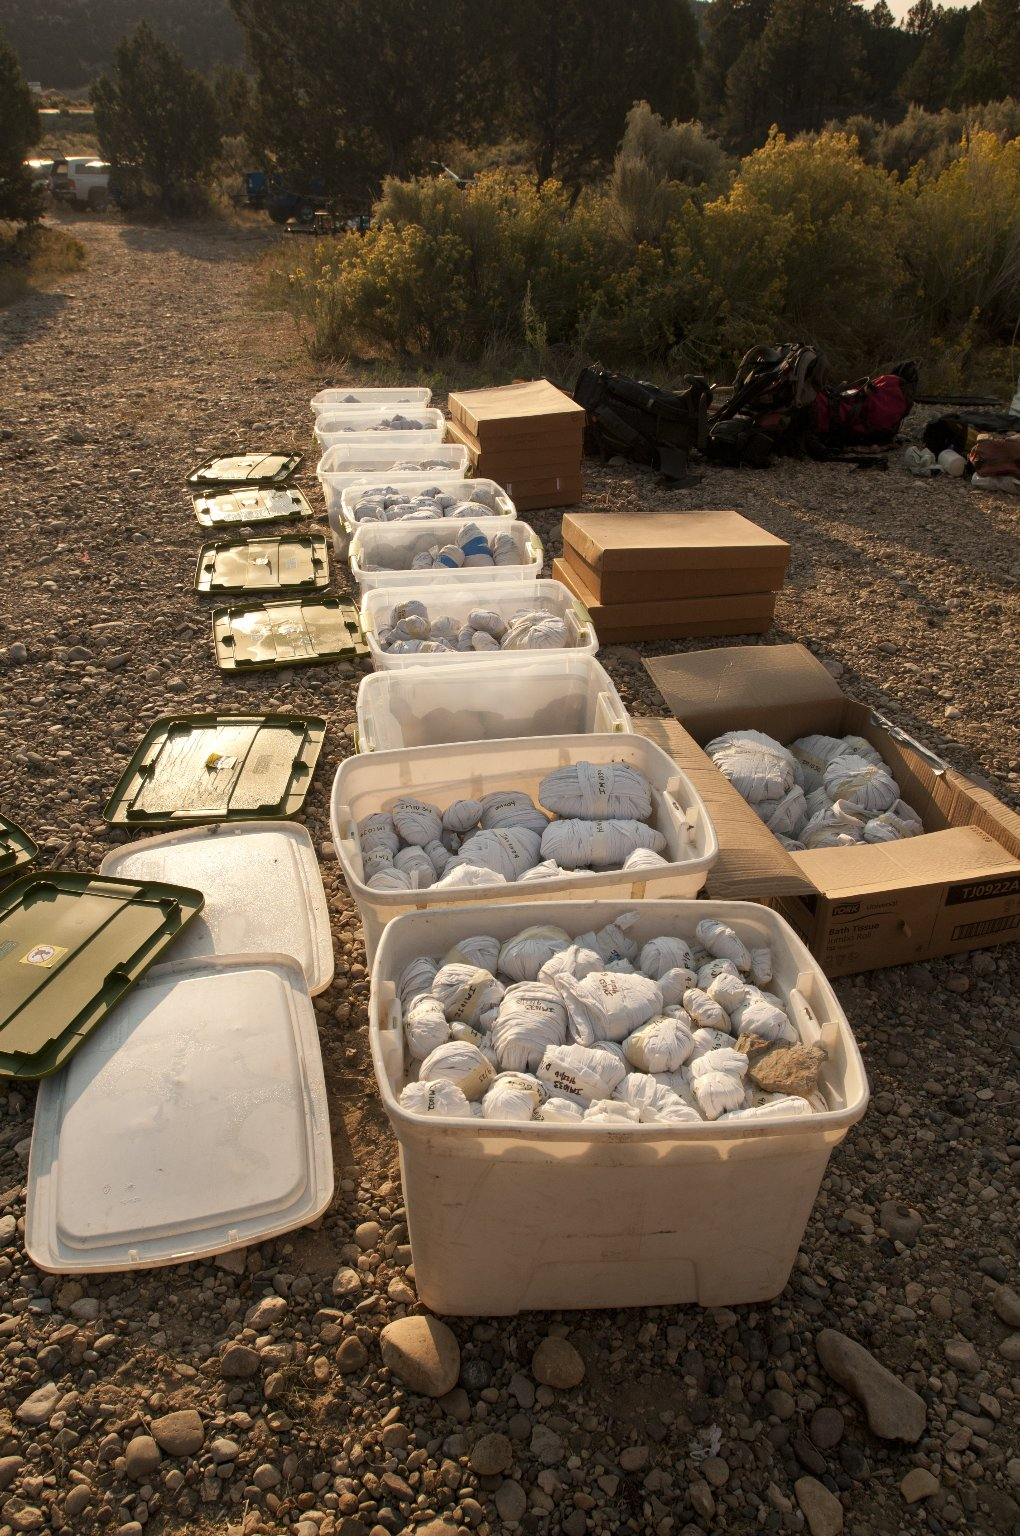 Bins holding collected specimens are lined up for their return to the Denver Museum of Nature and Science.